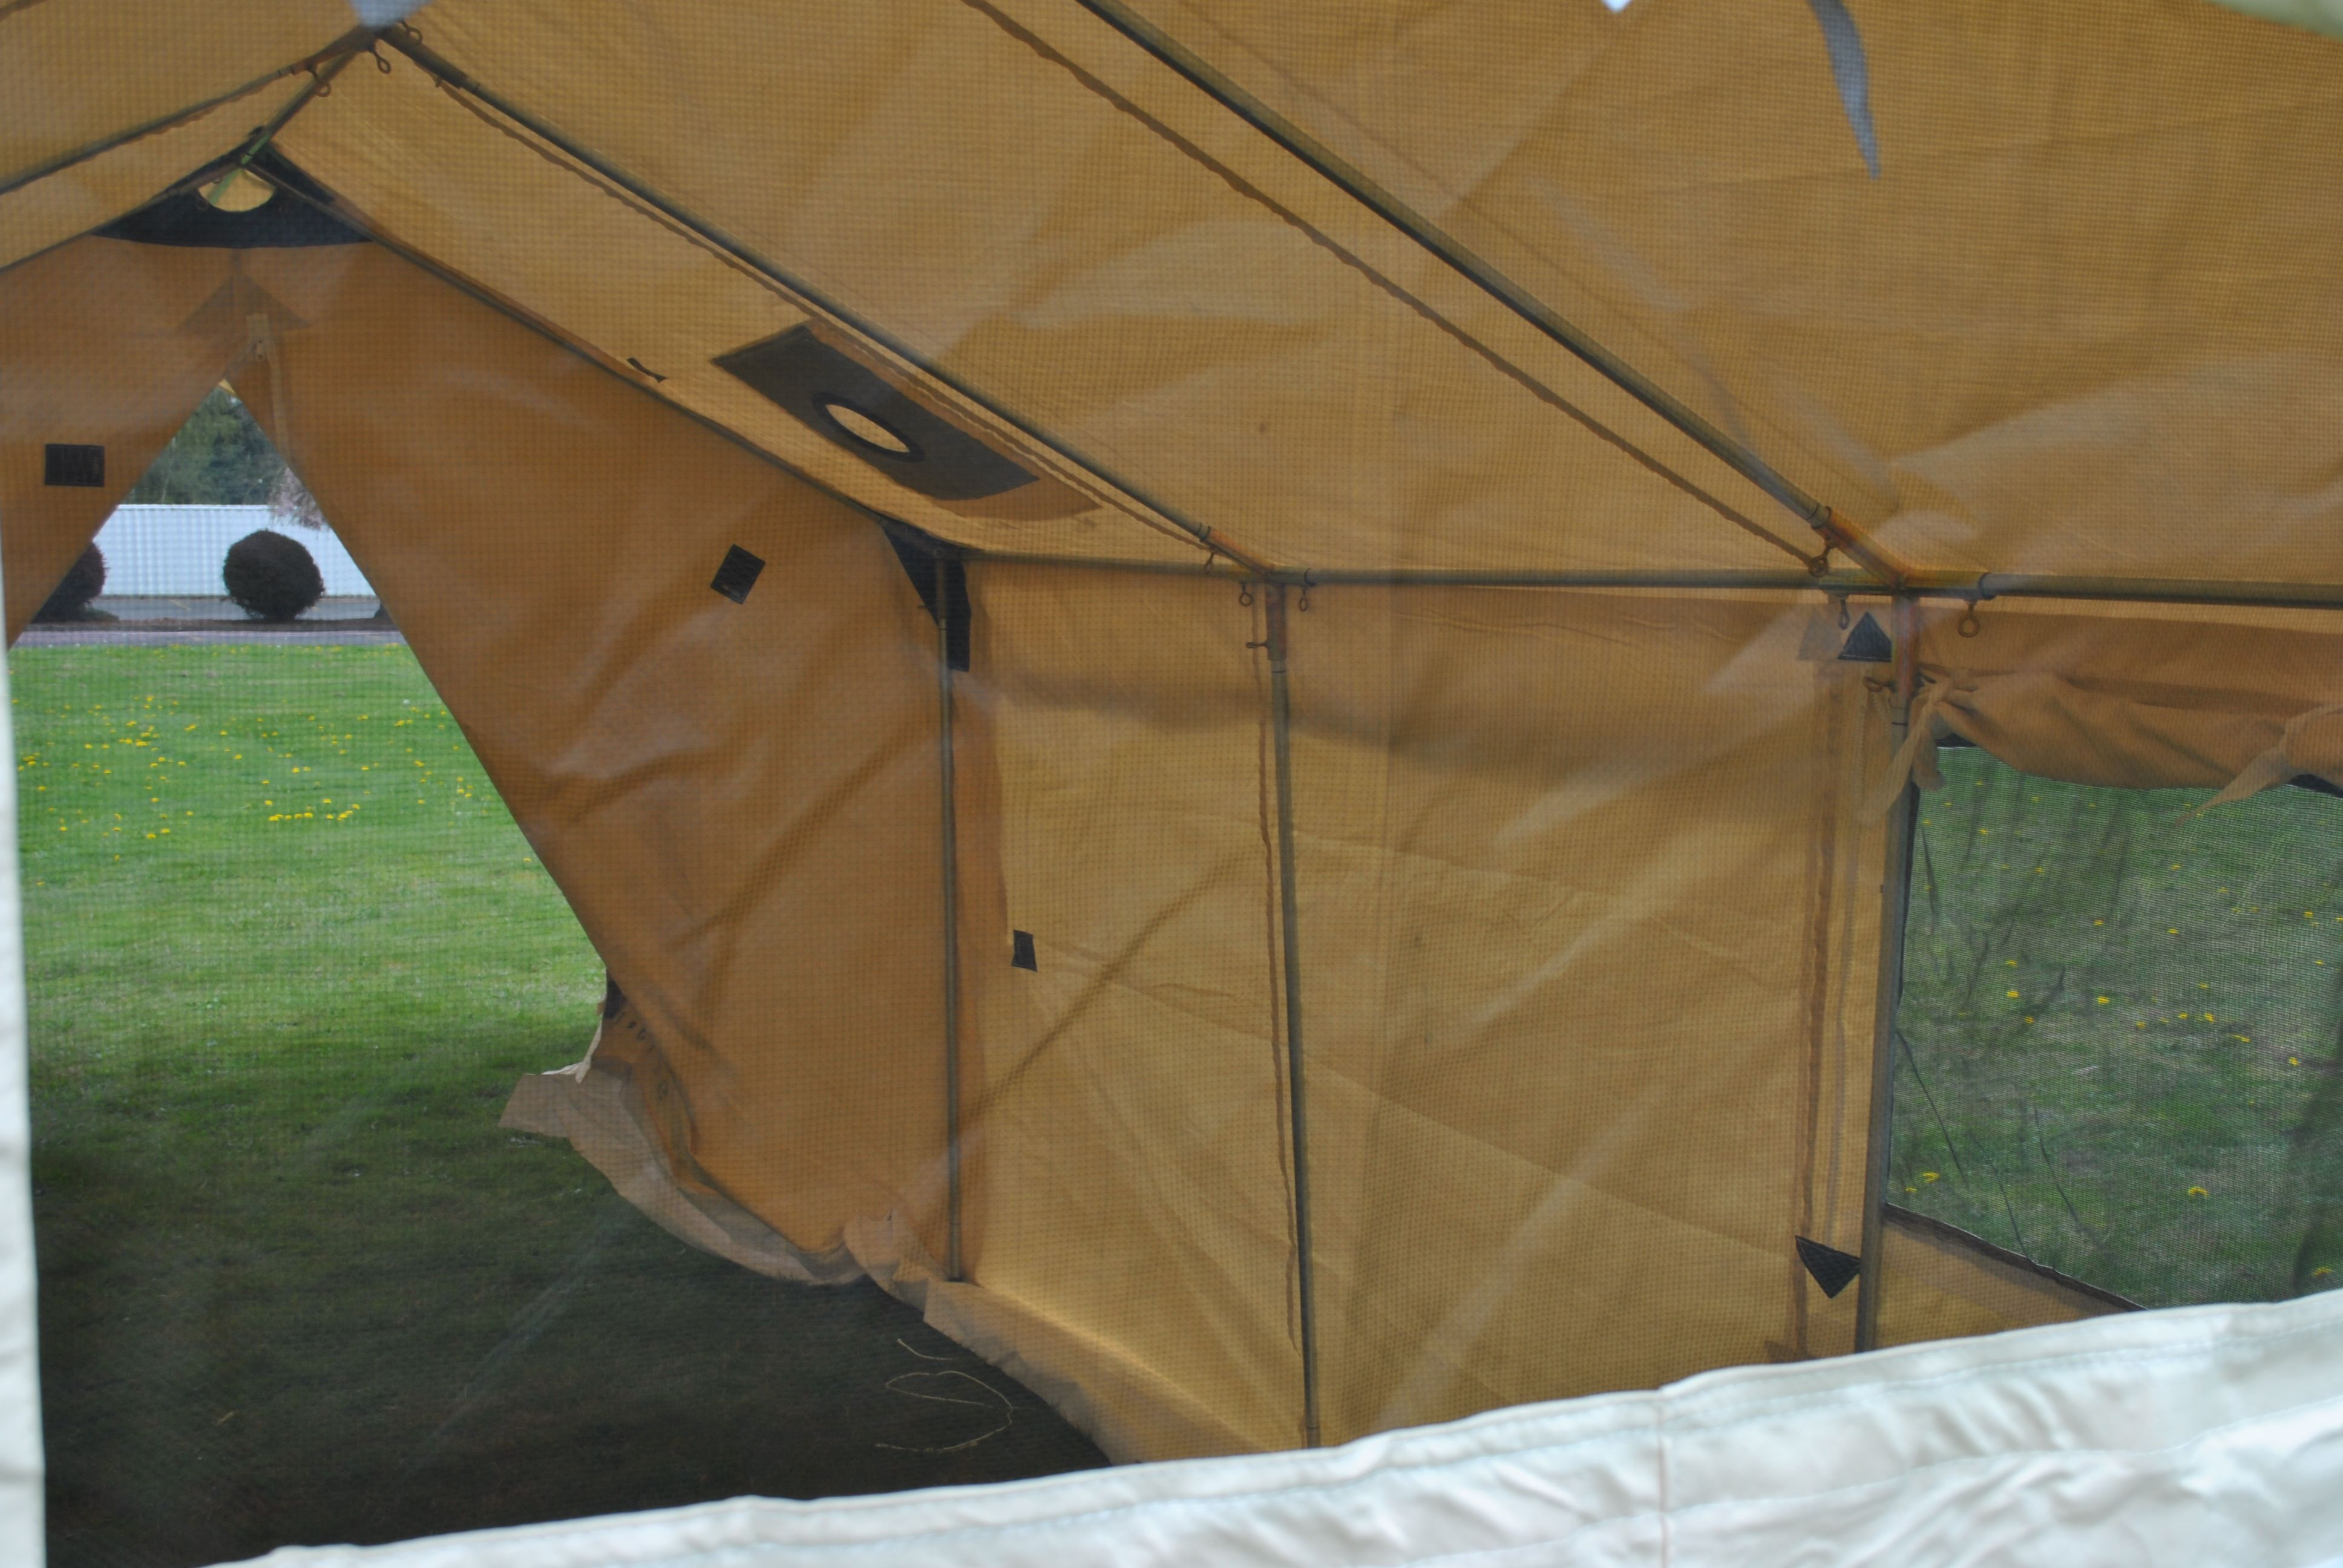 Wall Tent Tent, Wall tent, Outdoor gear